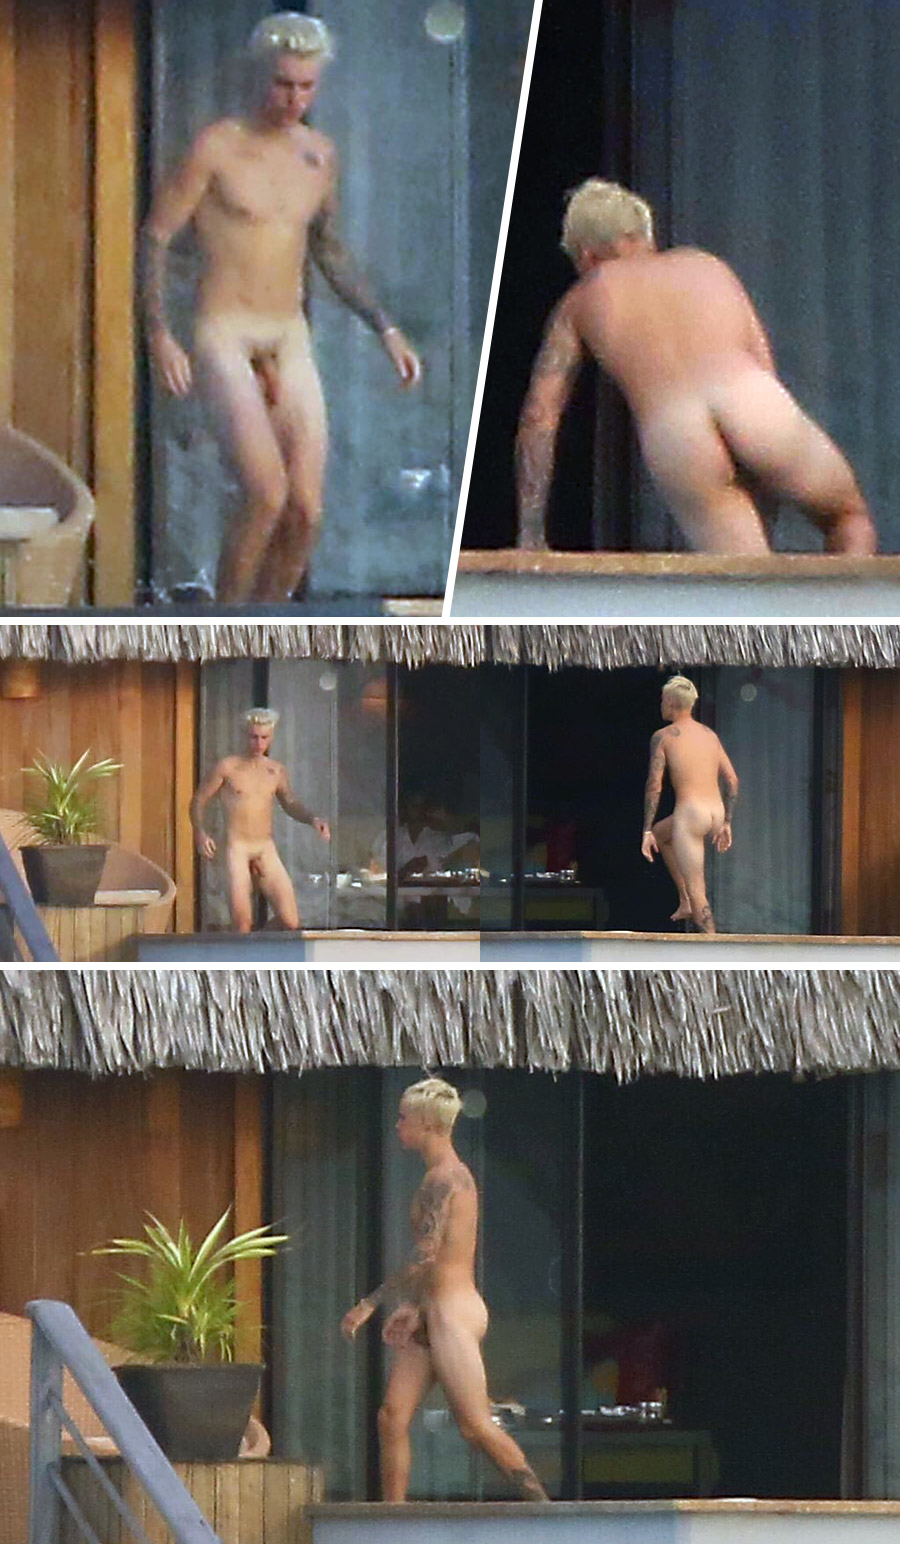 Male celeb caught naked